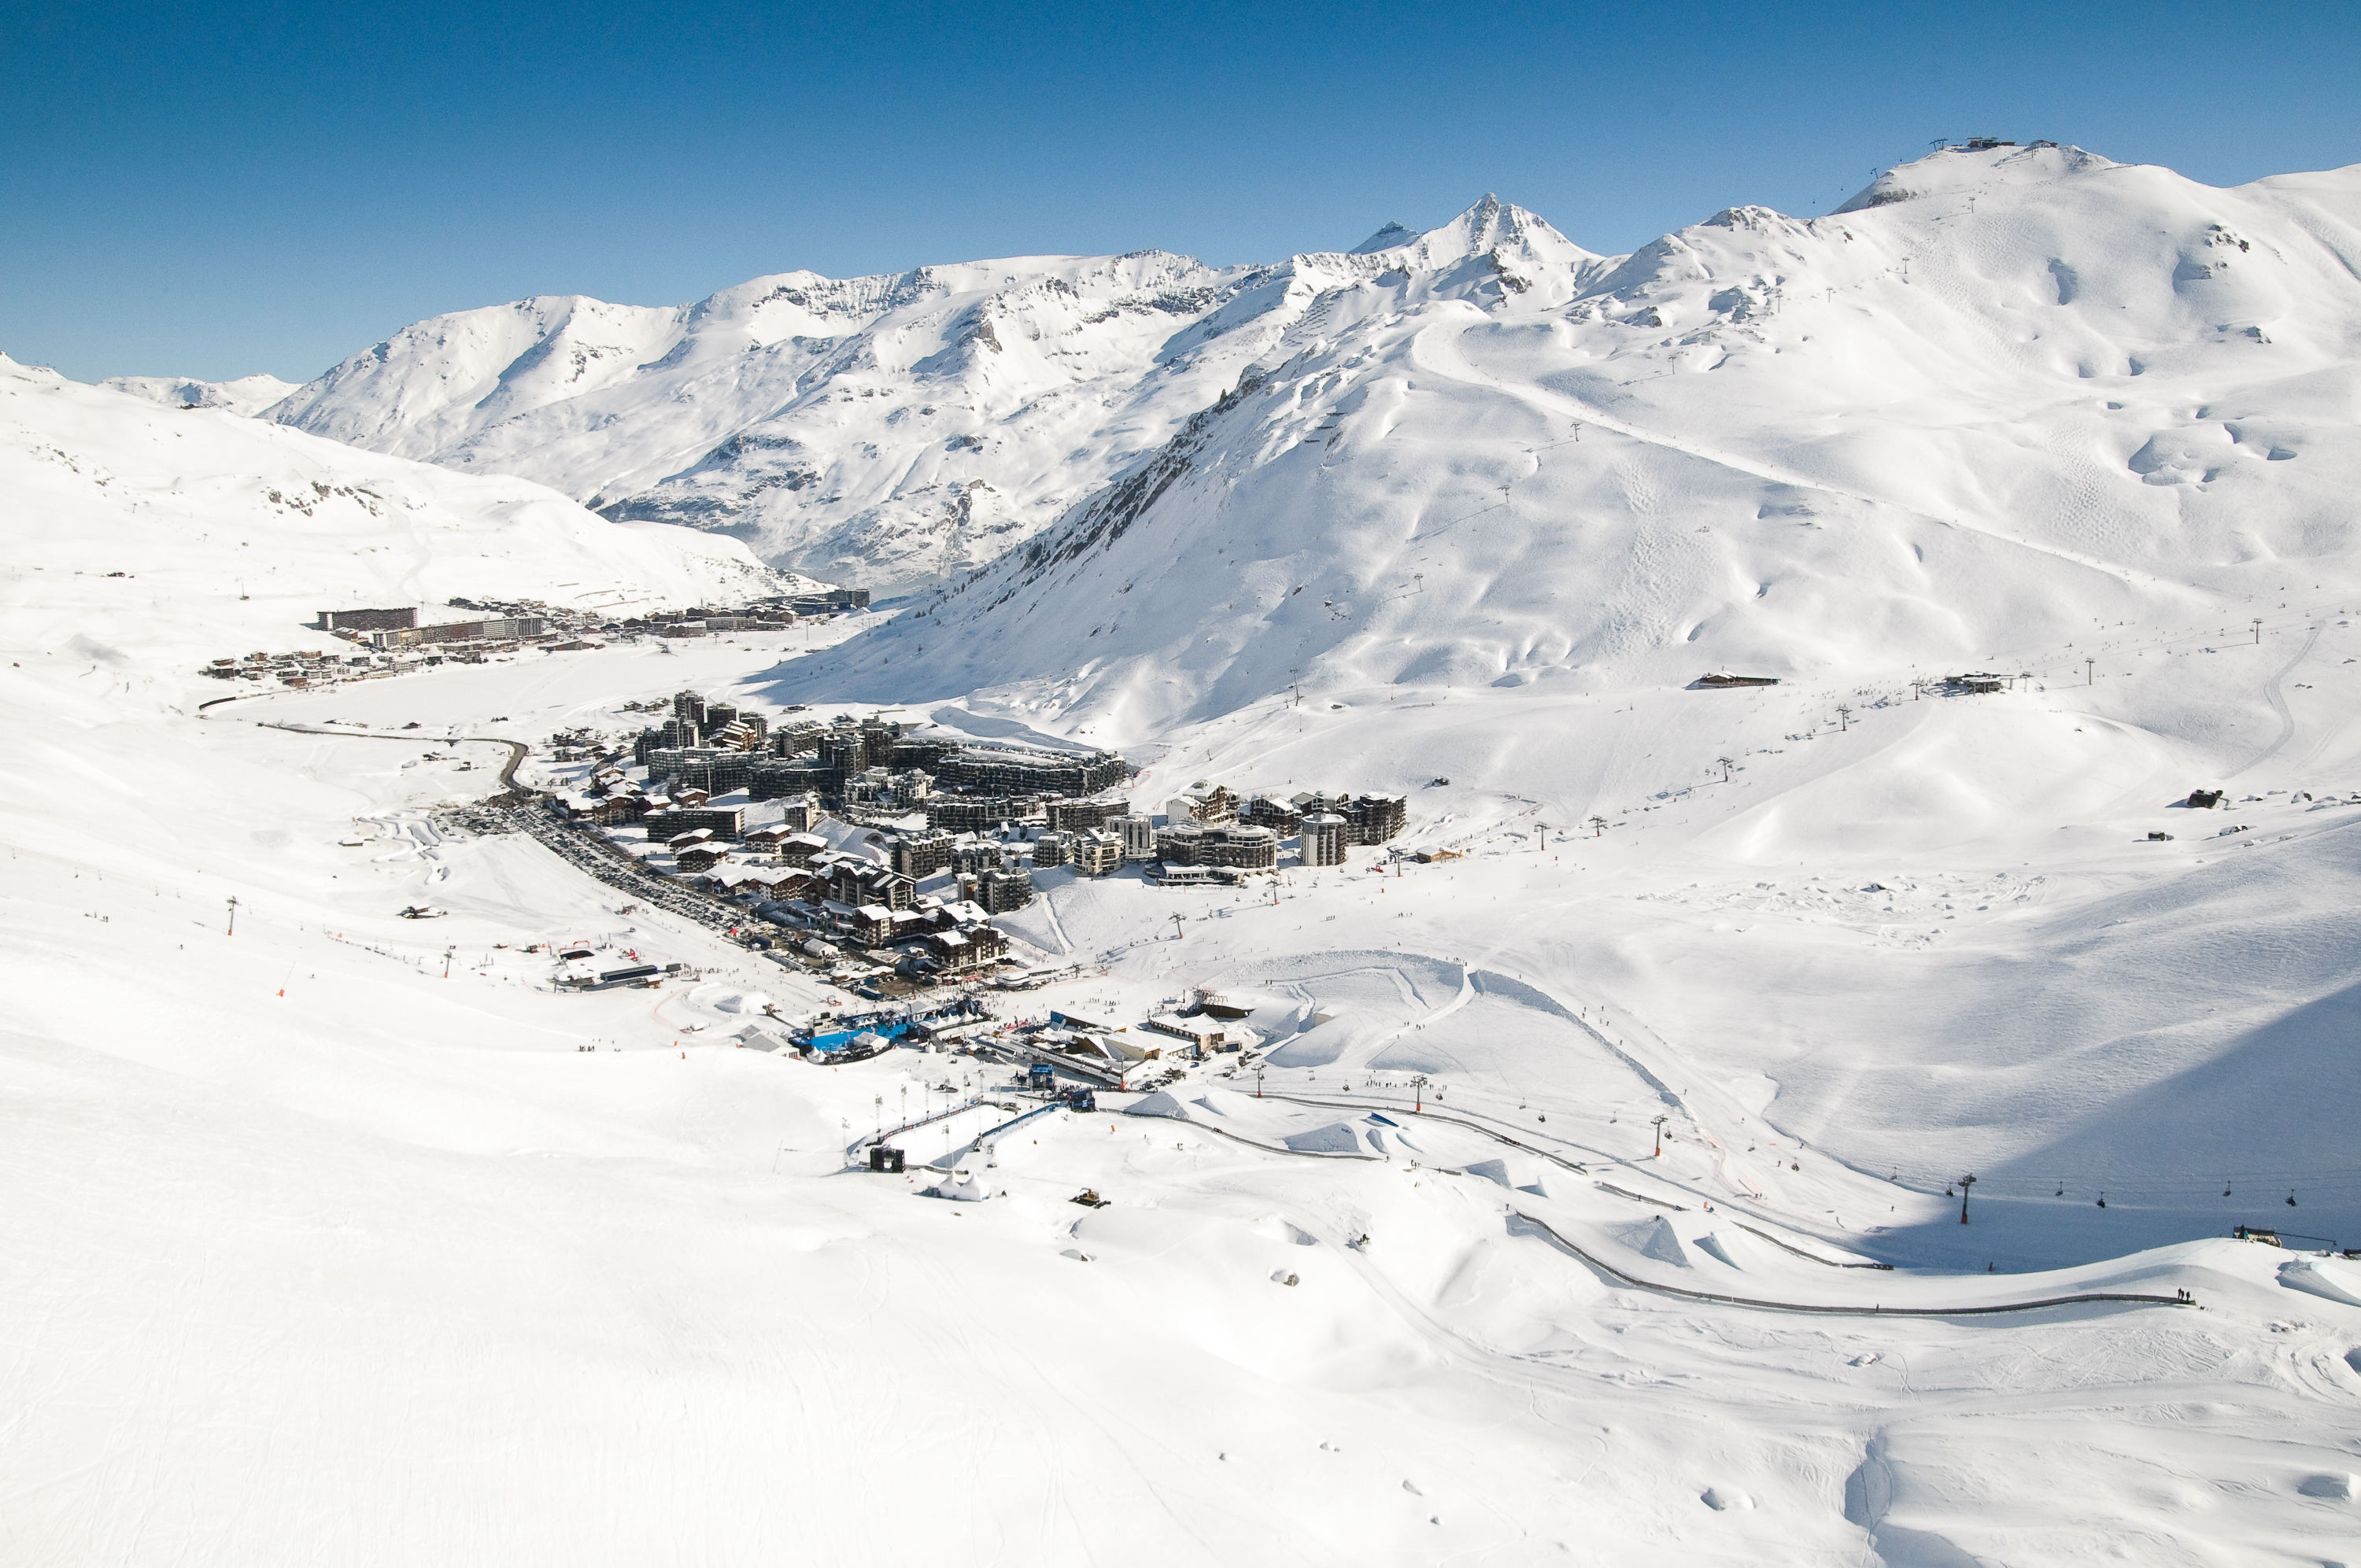 Tignes resort